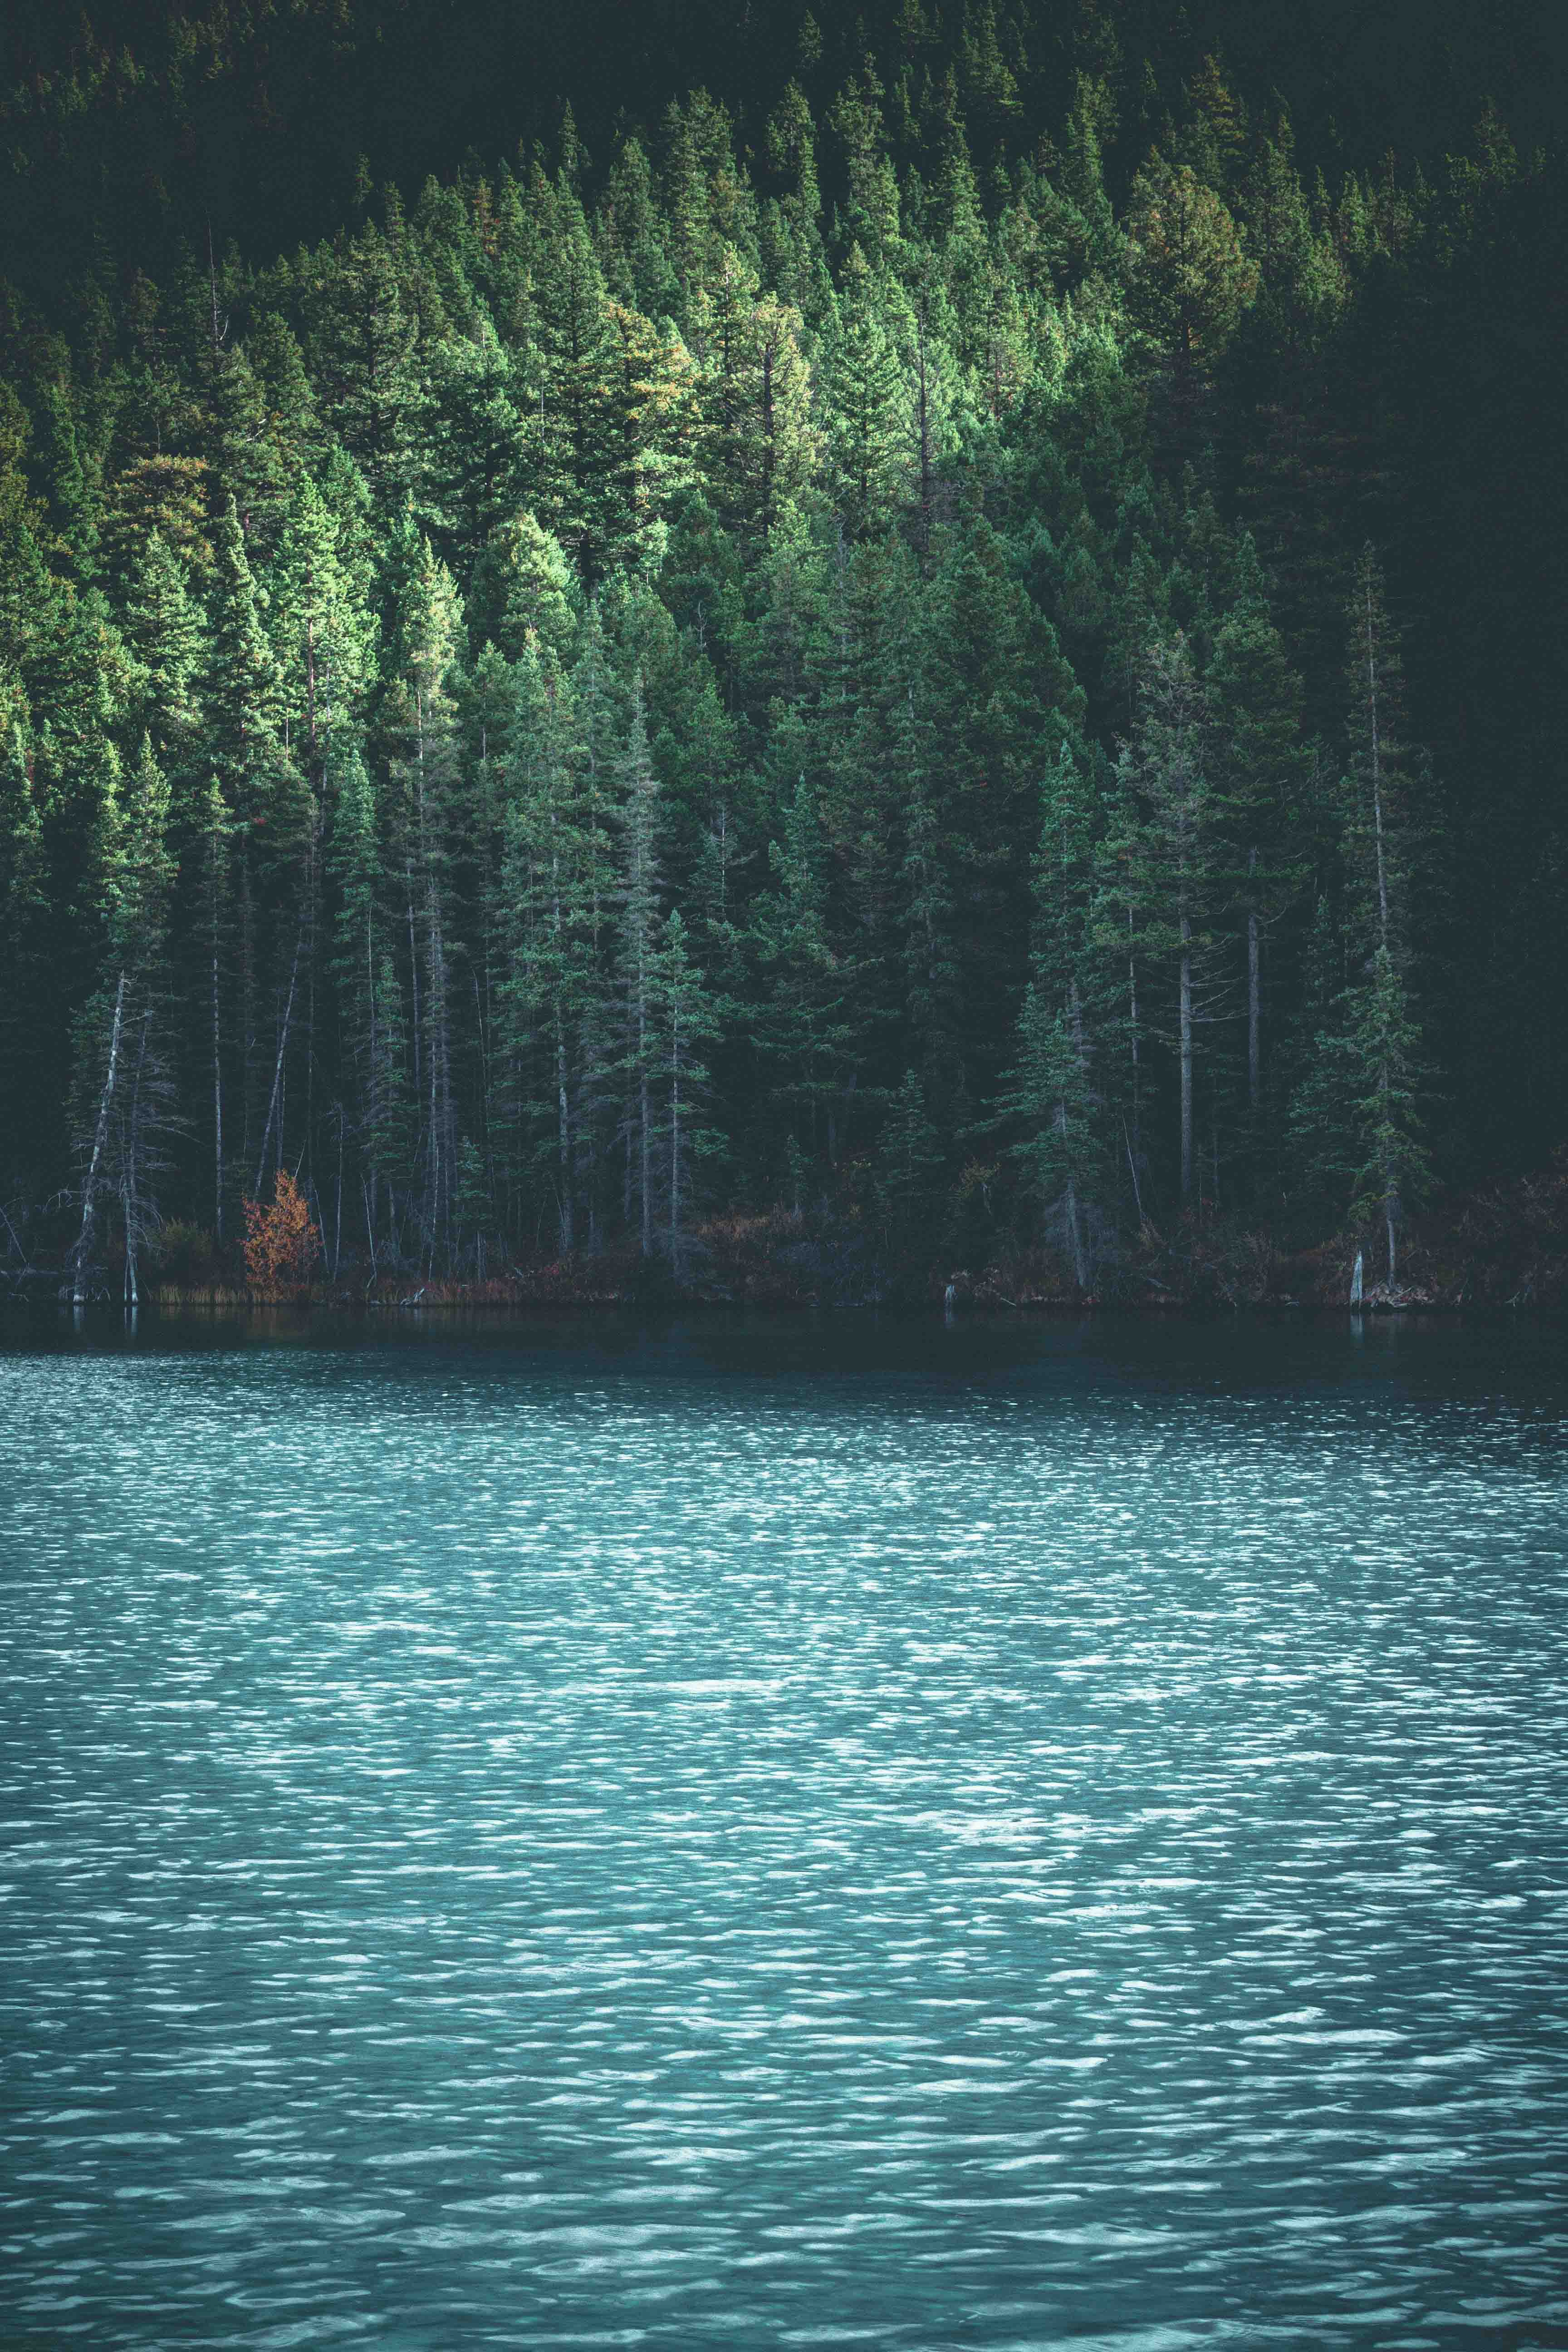 body of water beside trees